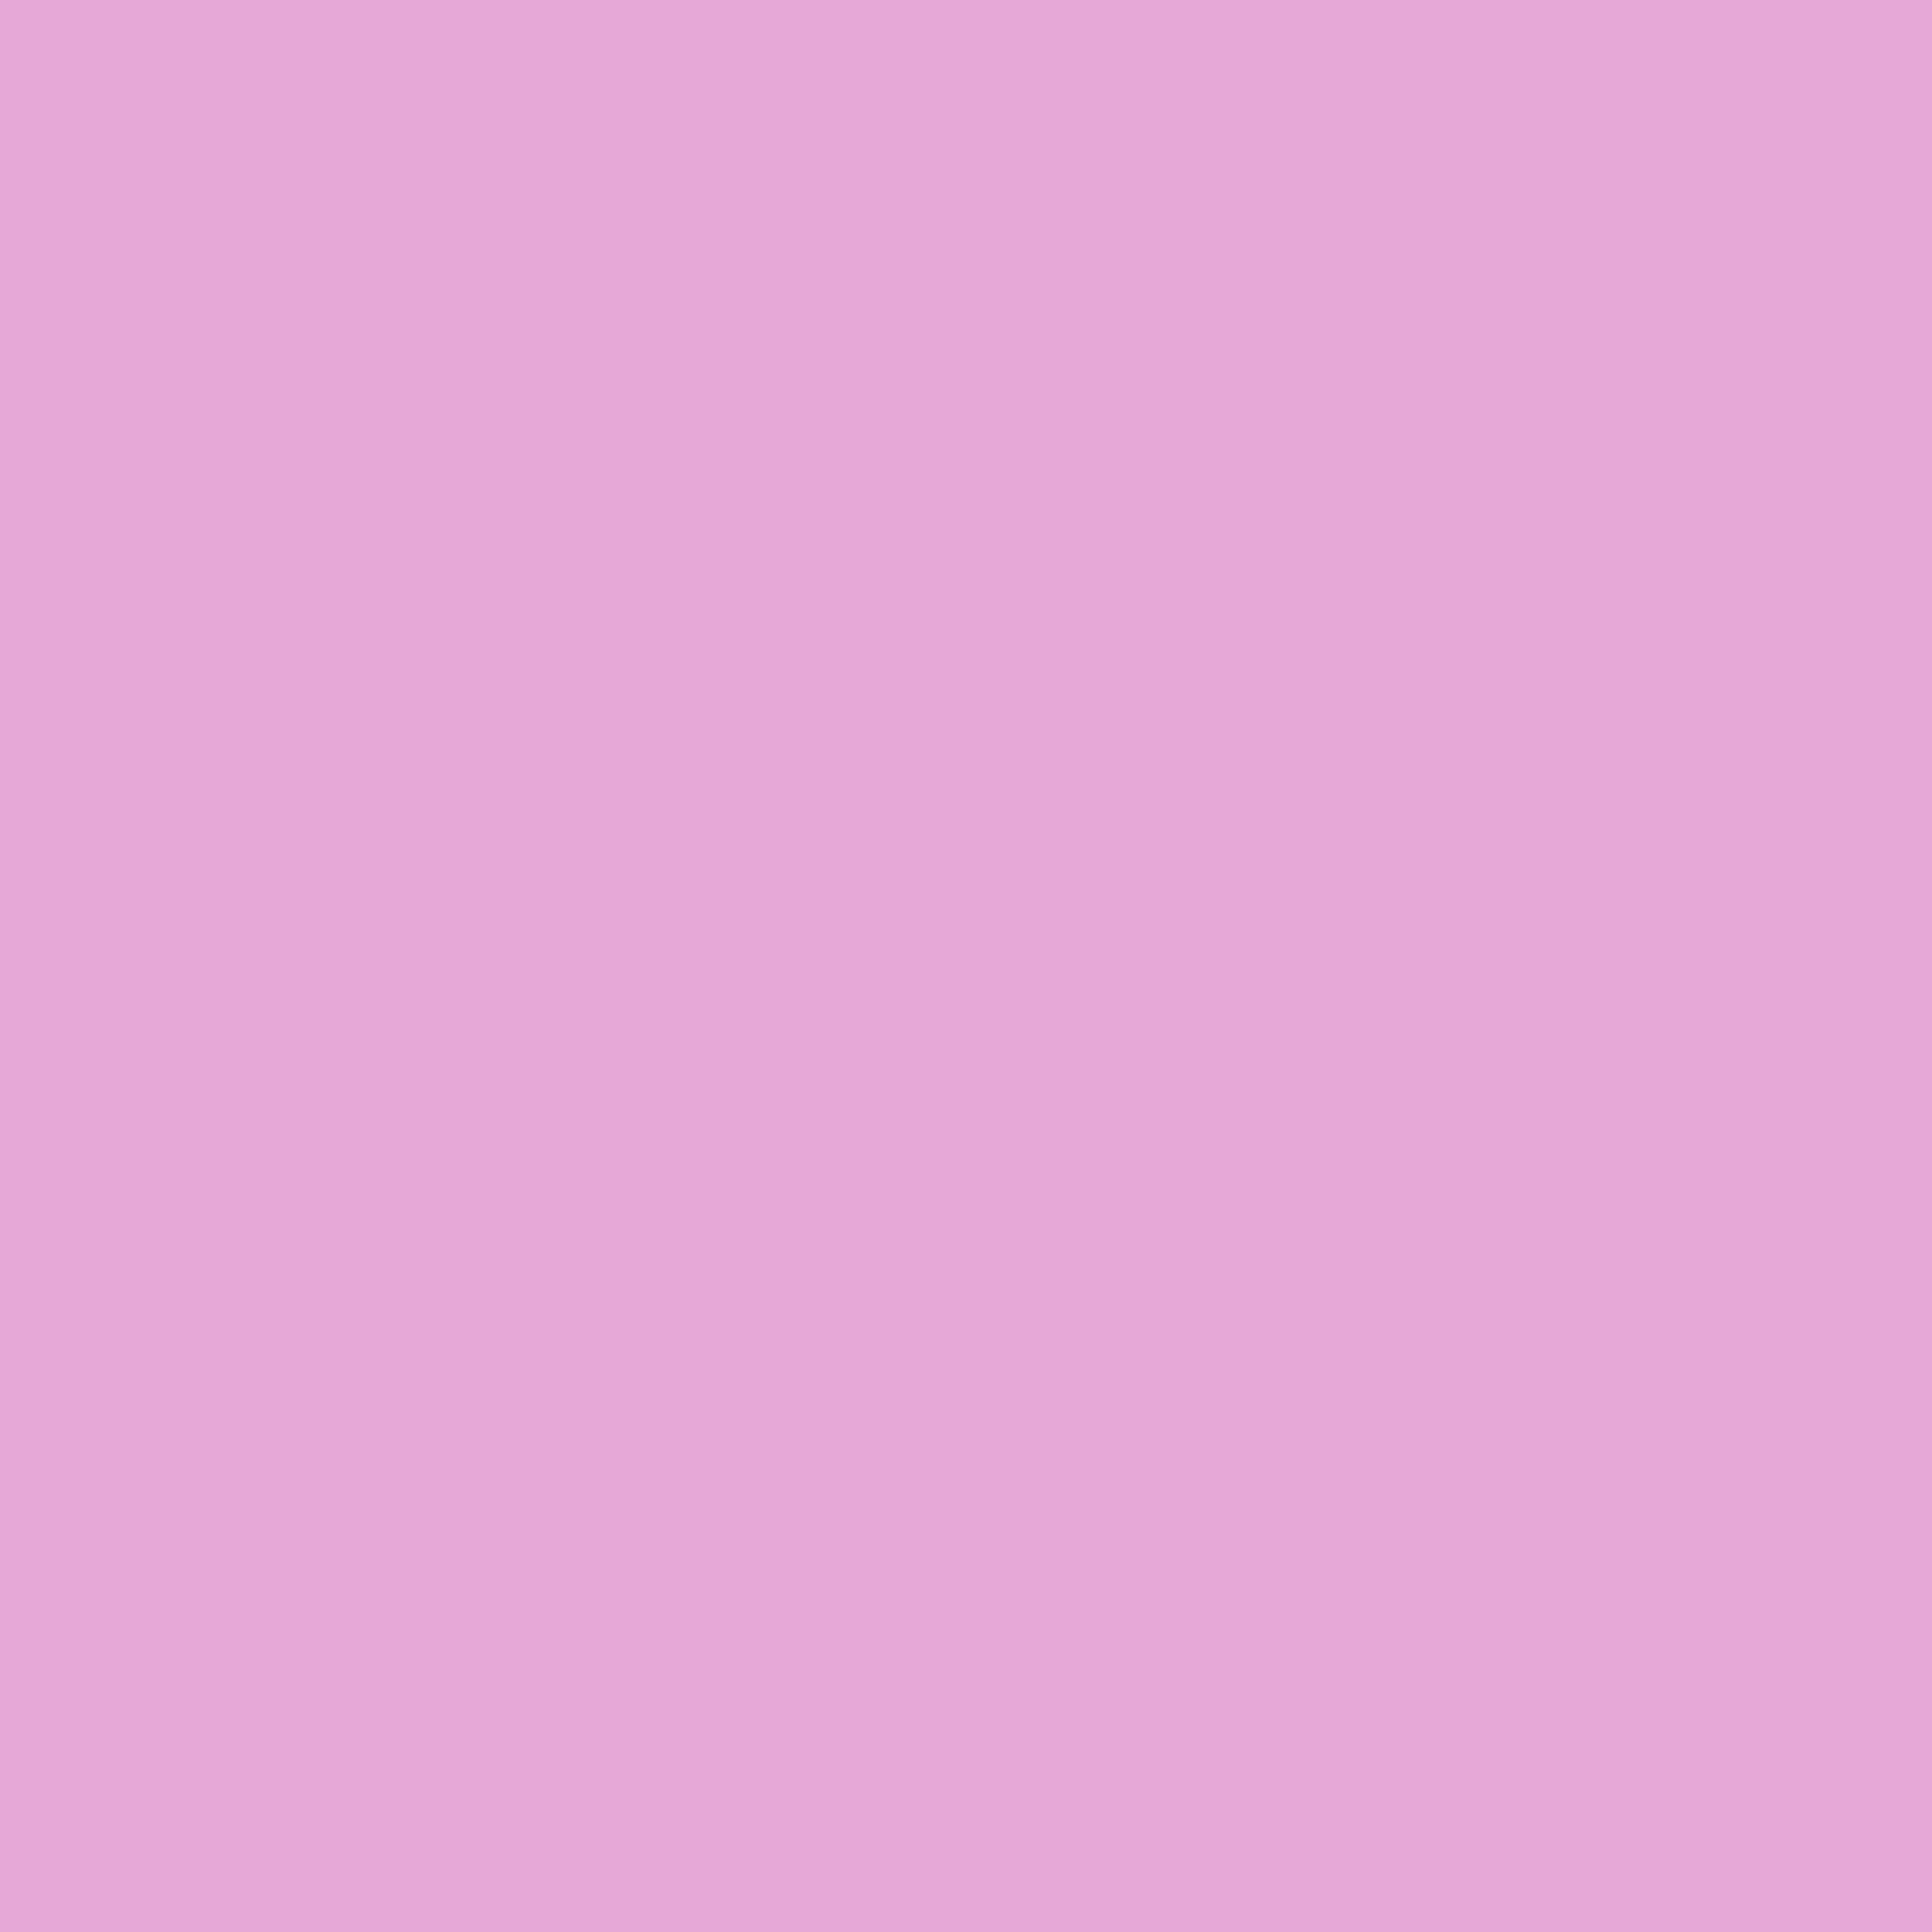 2048x2048 Light Orchid Solid Color Background